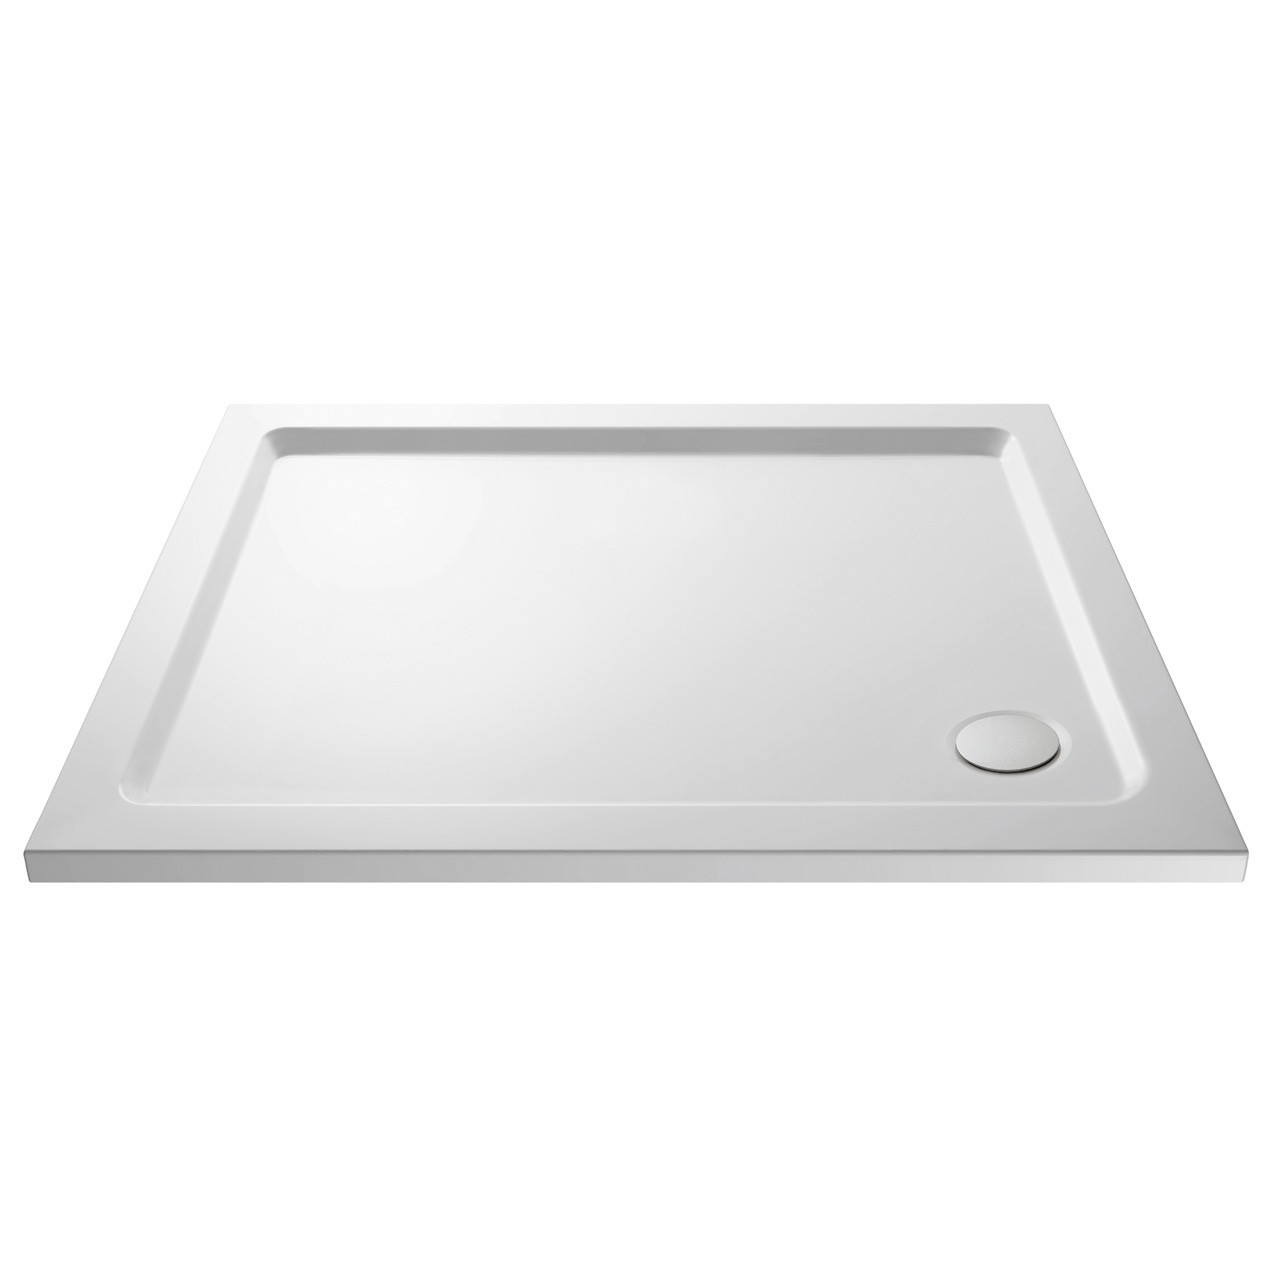 Premiere Pearlstone 900mm x 700mm x 40mm Rectangular Shower Tray with Corner Waste - NTP007